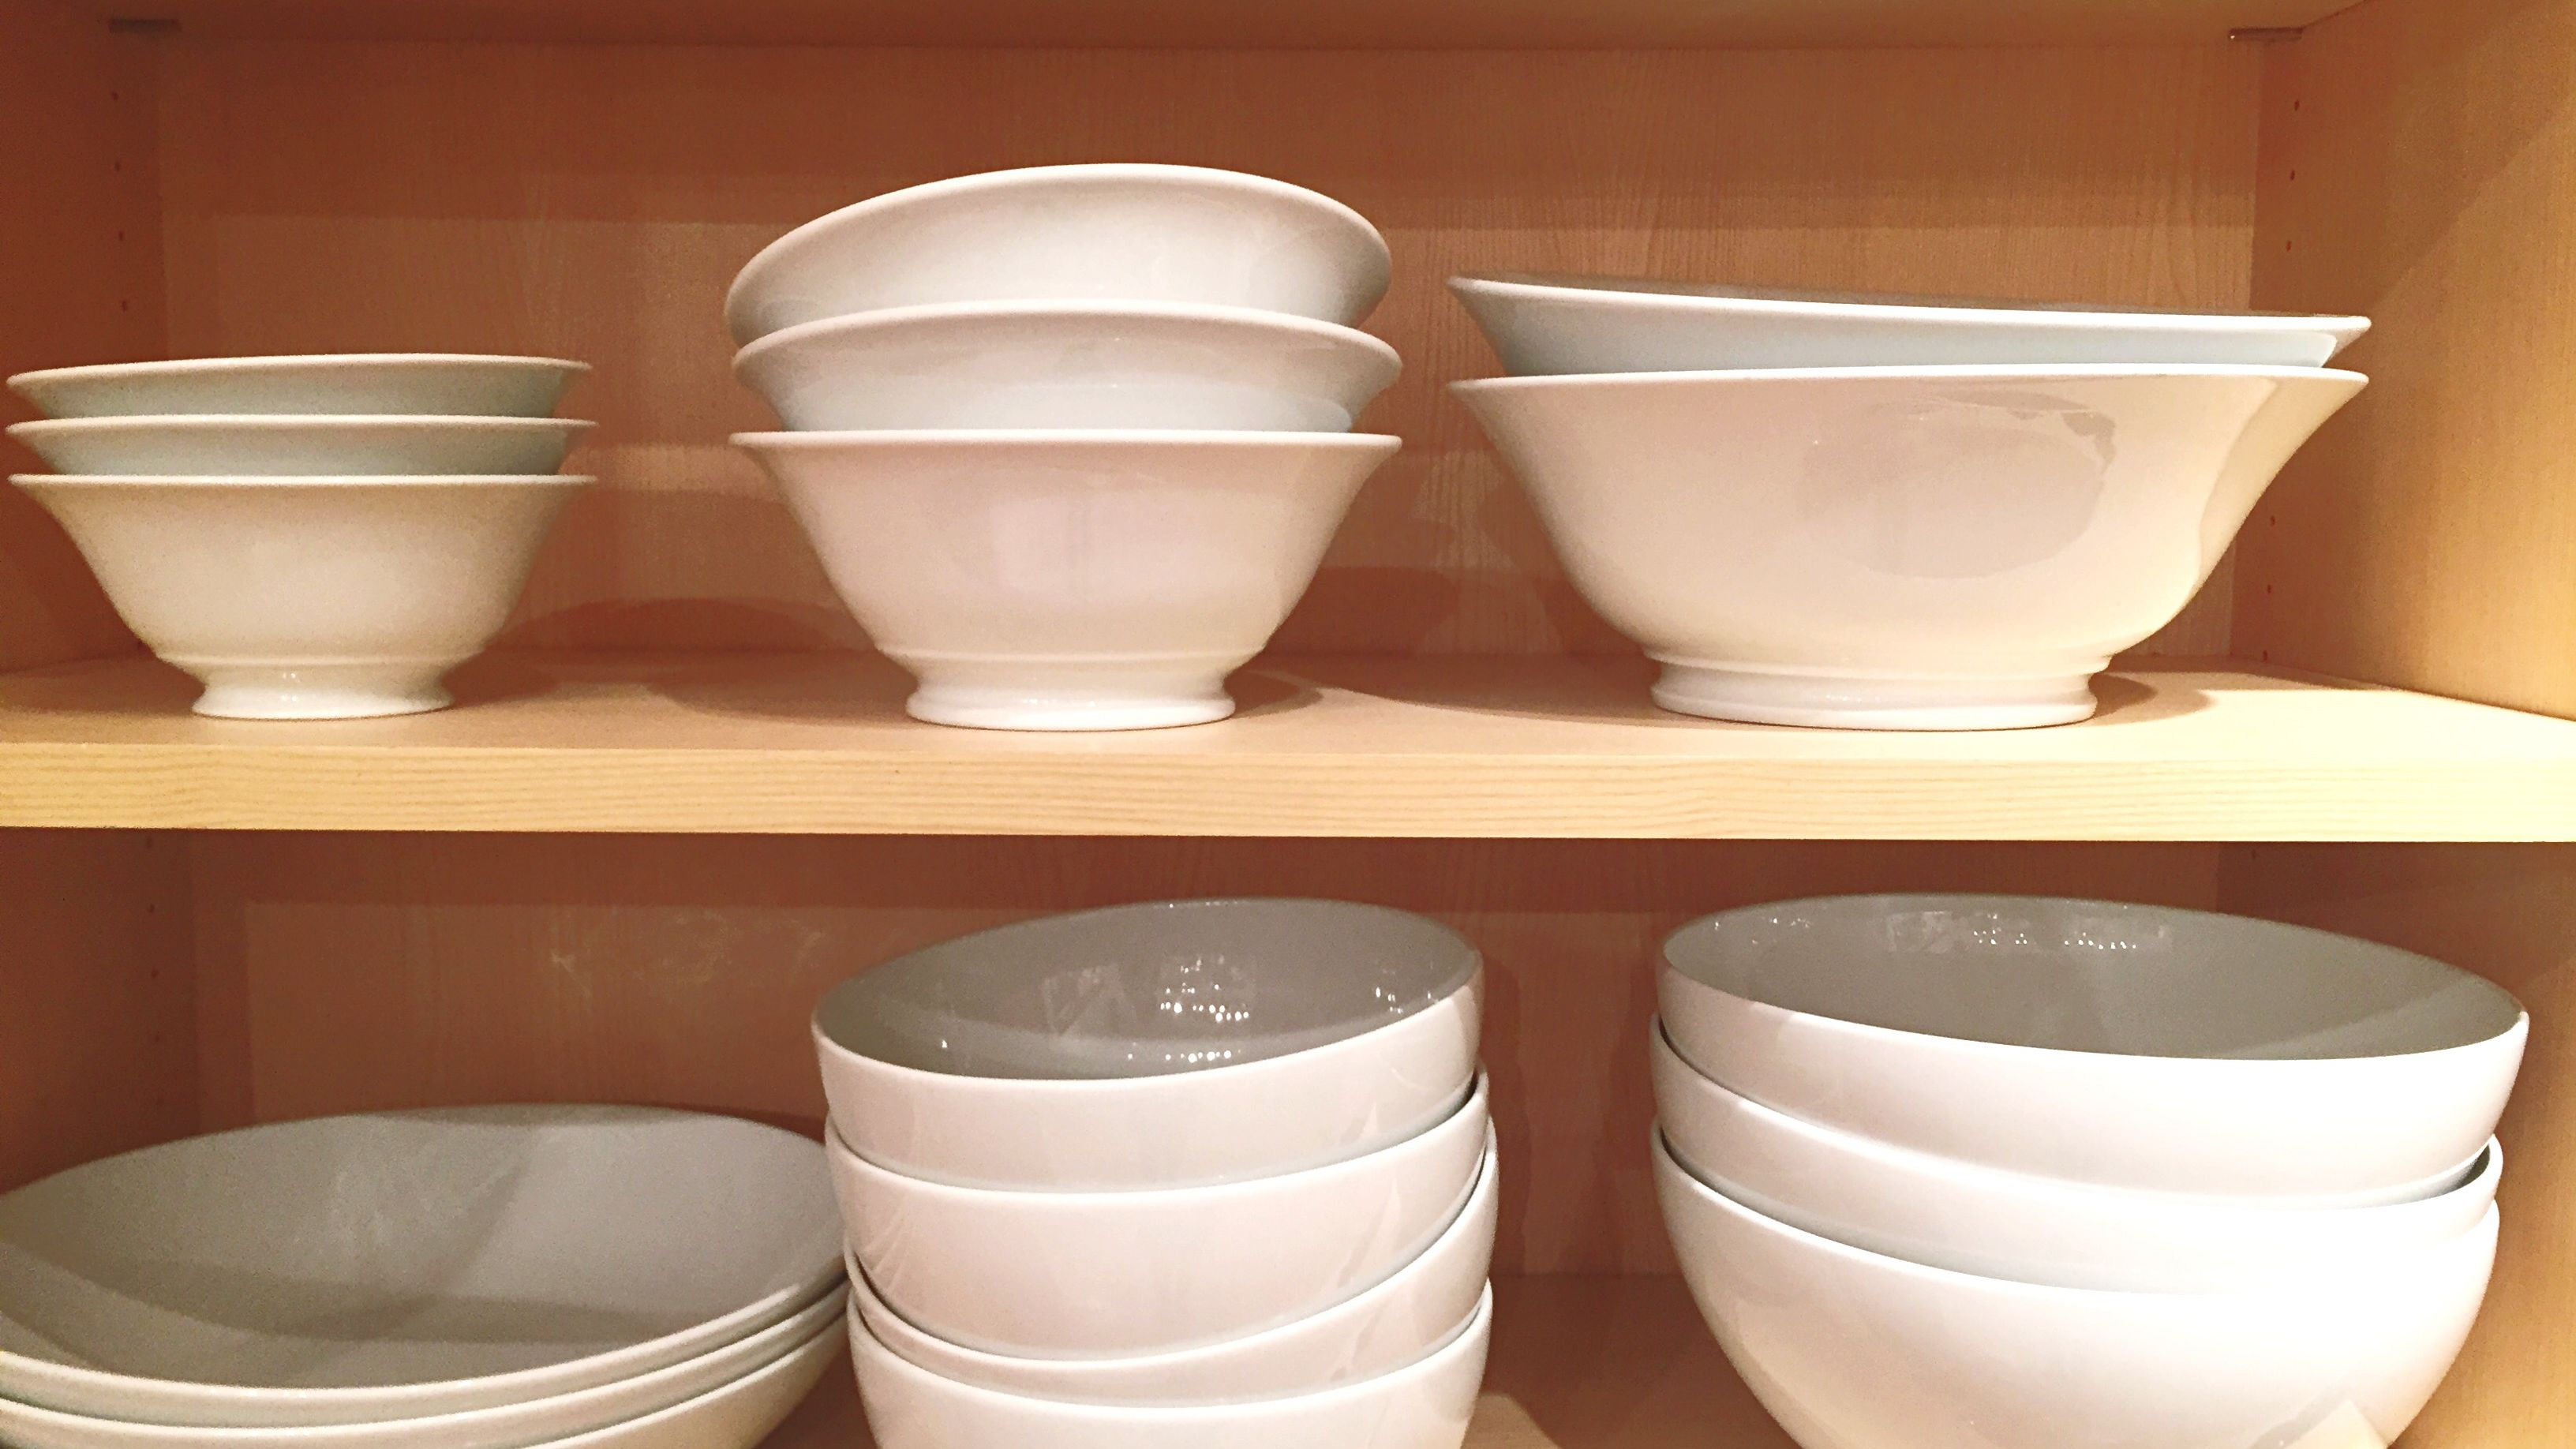 How to Identify the Different Types of Dinnerware